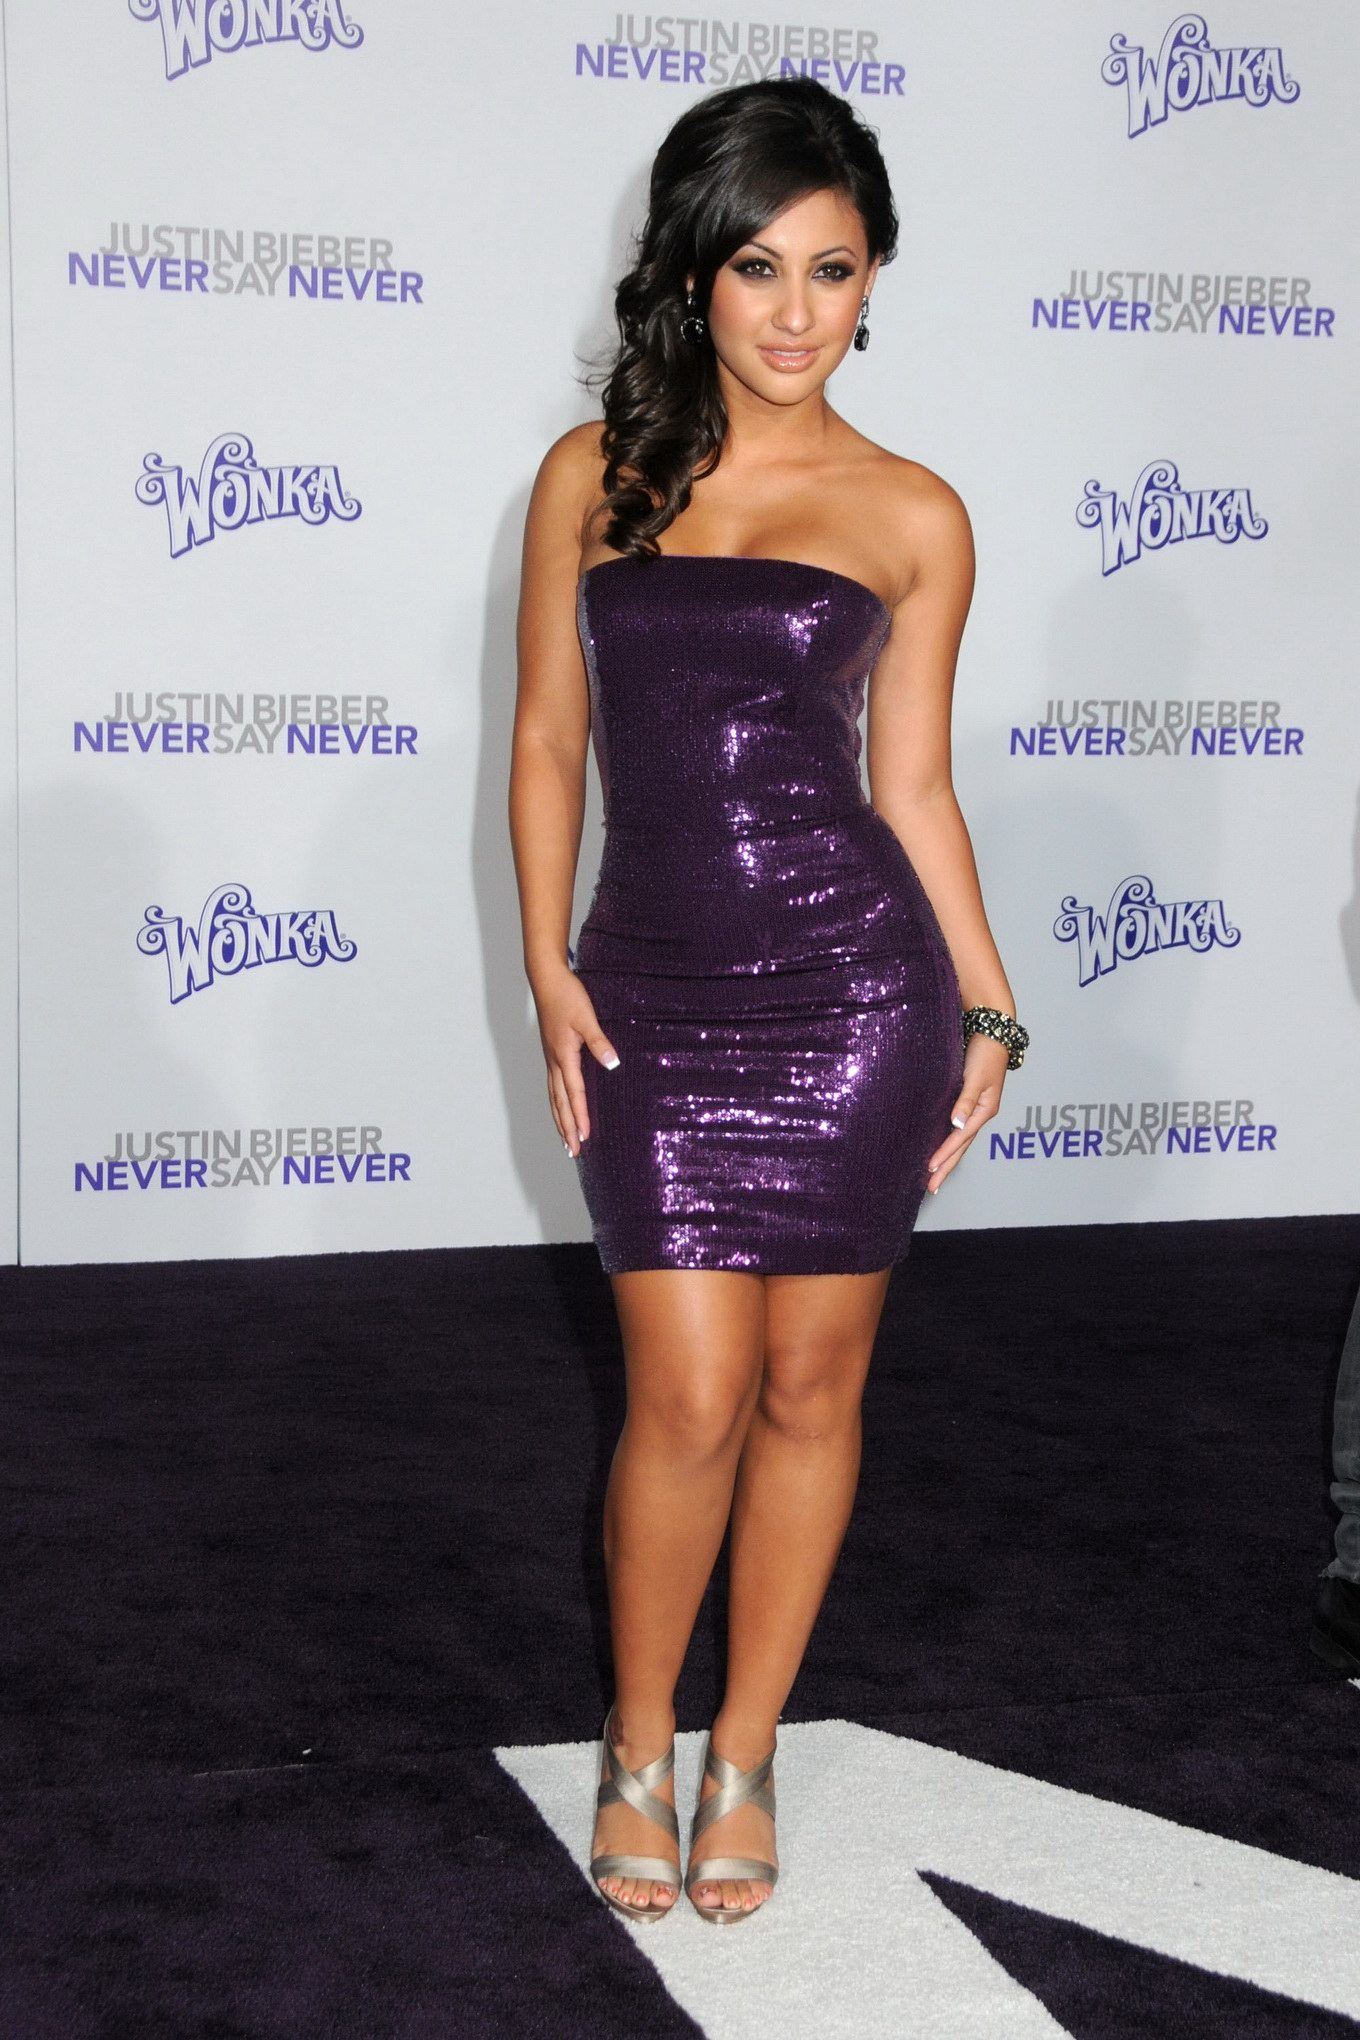 francia raisa showing off her booty in tight mini dress at